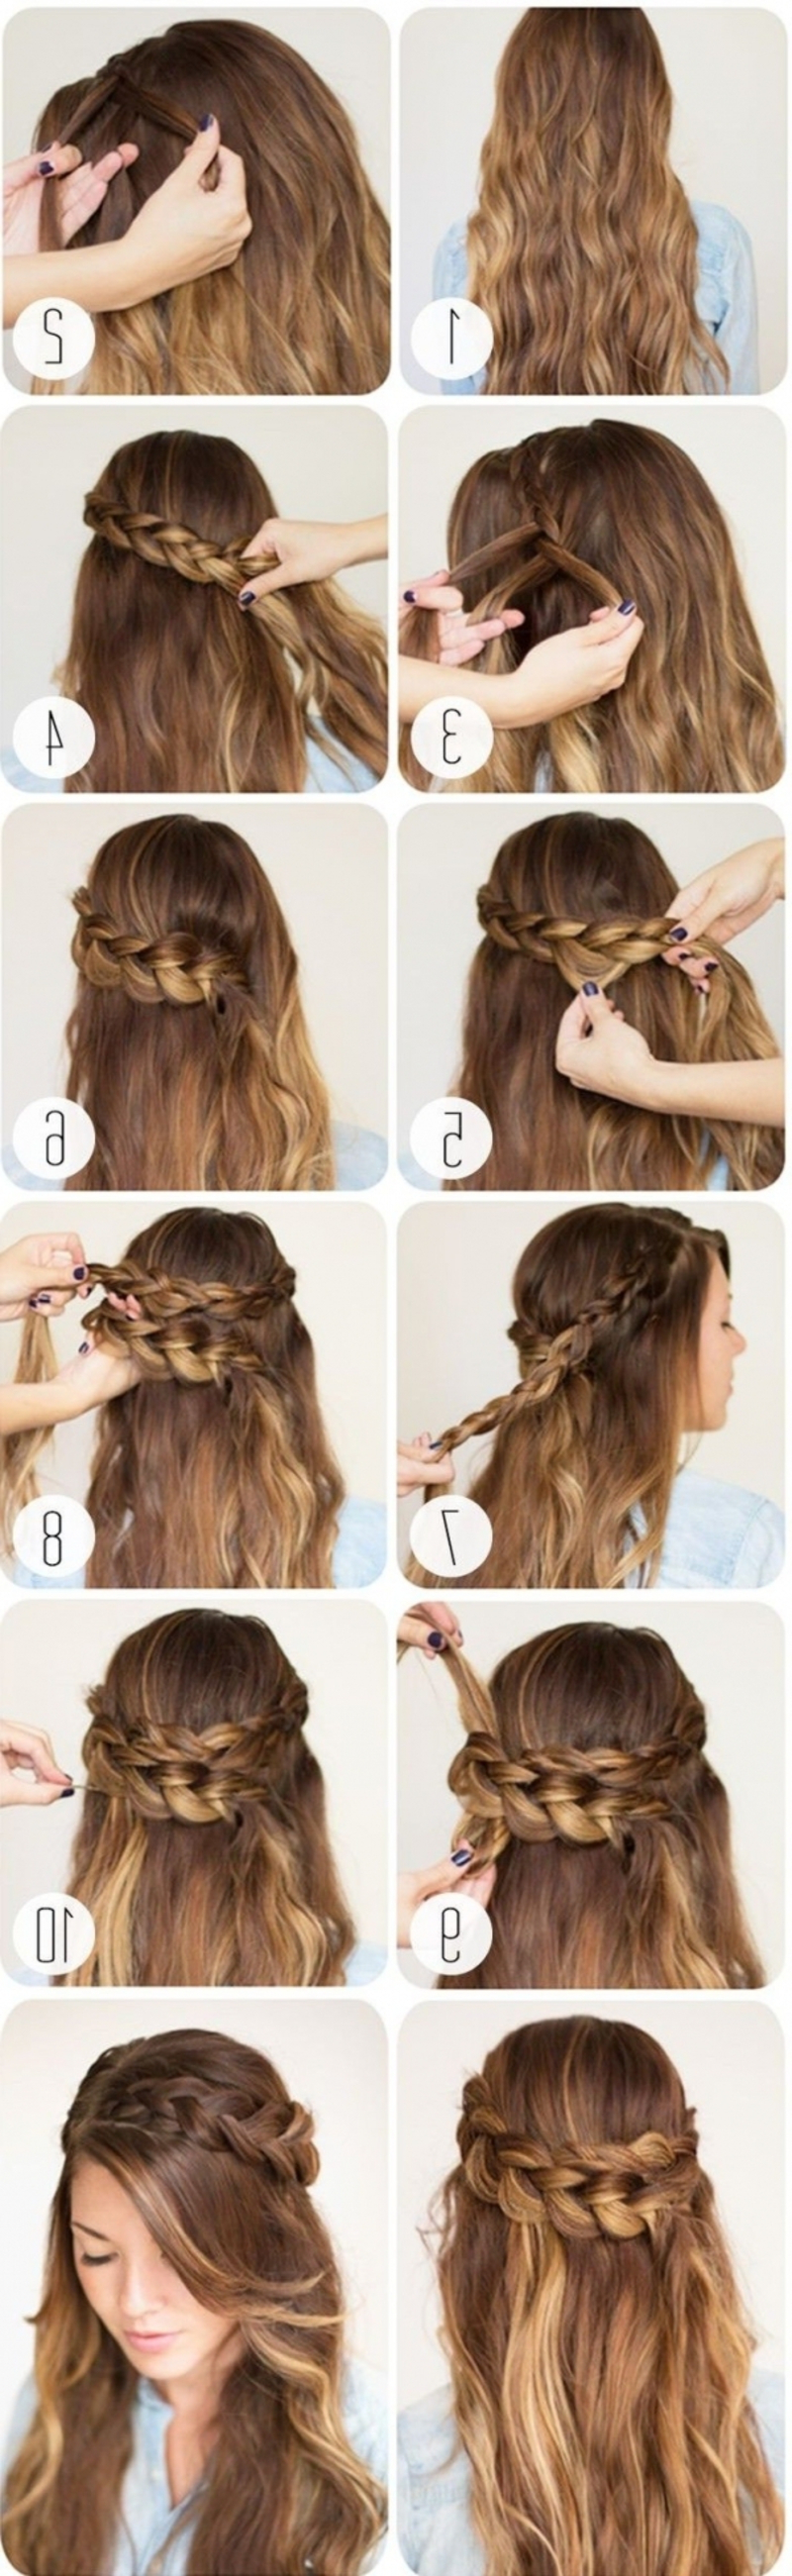 43 #fancy Braided #hairstyle Ideas From #pinterest Pertaining To Current Fancy Braided Hairstyles (View 20 of 20)